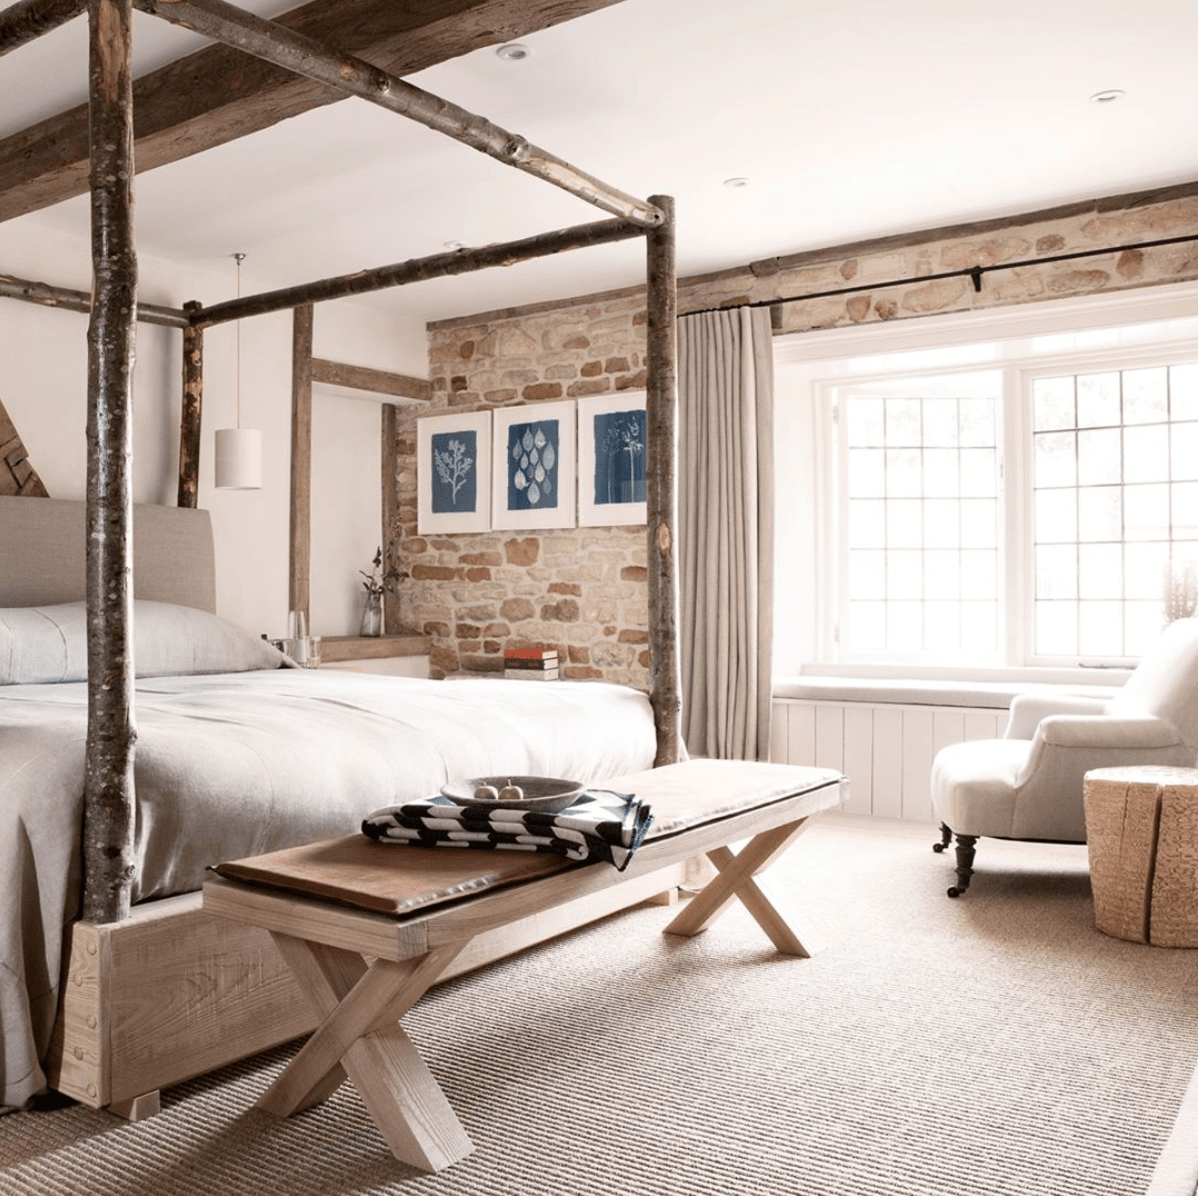 The Best Pub Hotels in England | The Wild Rabbit